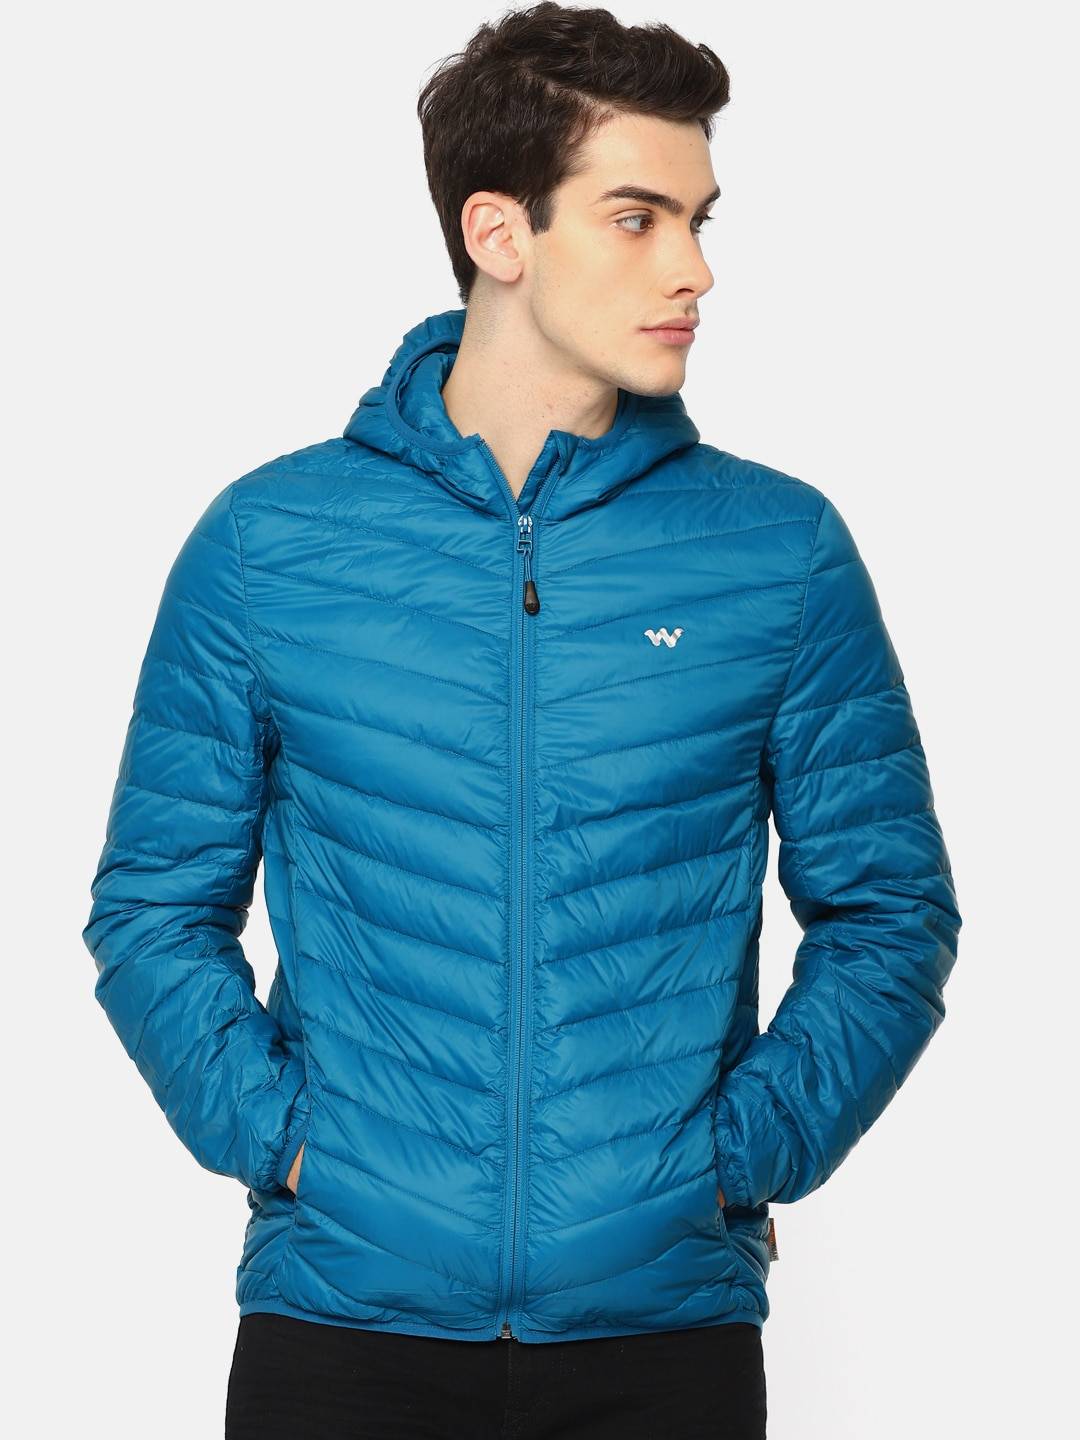 590be7a8e9549 Mens Wildcraft Jackets - Buy Mens Wildcraft Jackets online in India